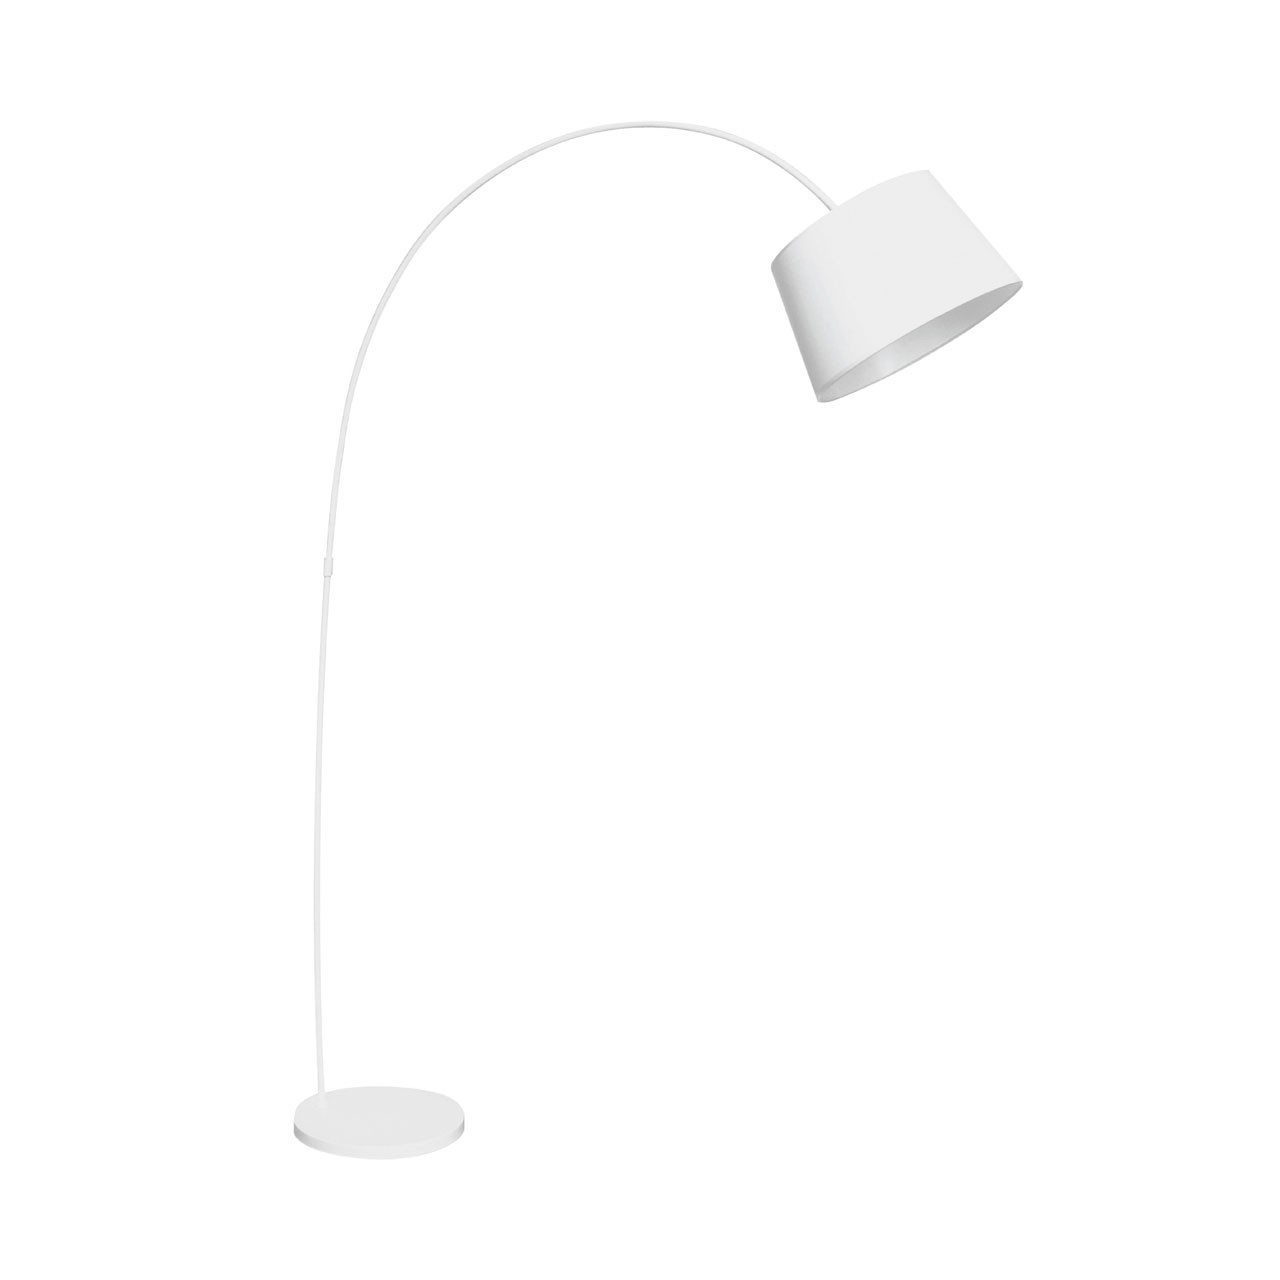 Prime Furnishing Arched Metal Floor Lamp - White